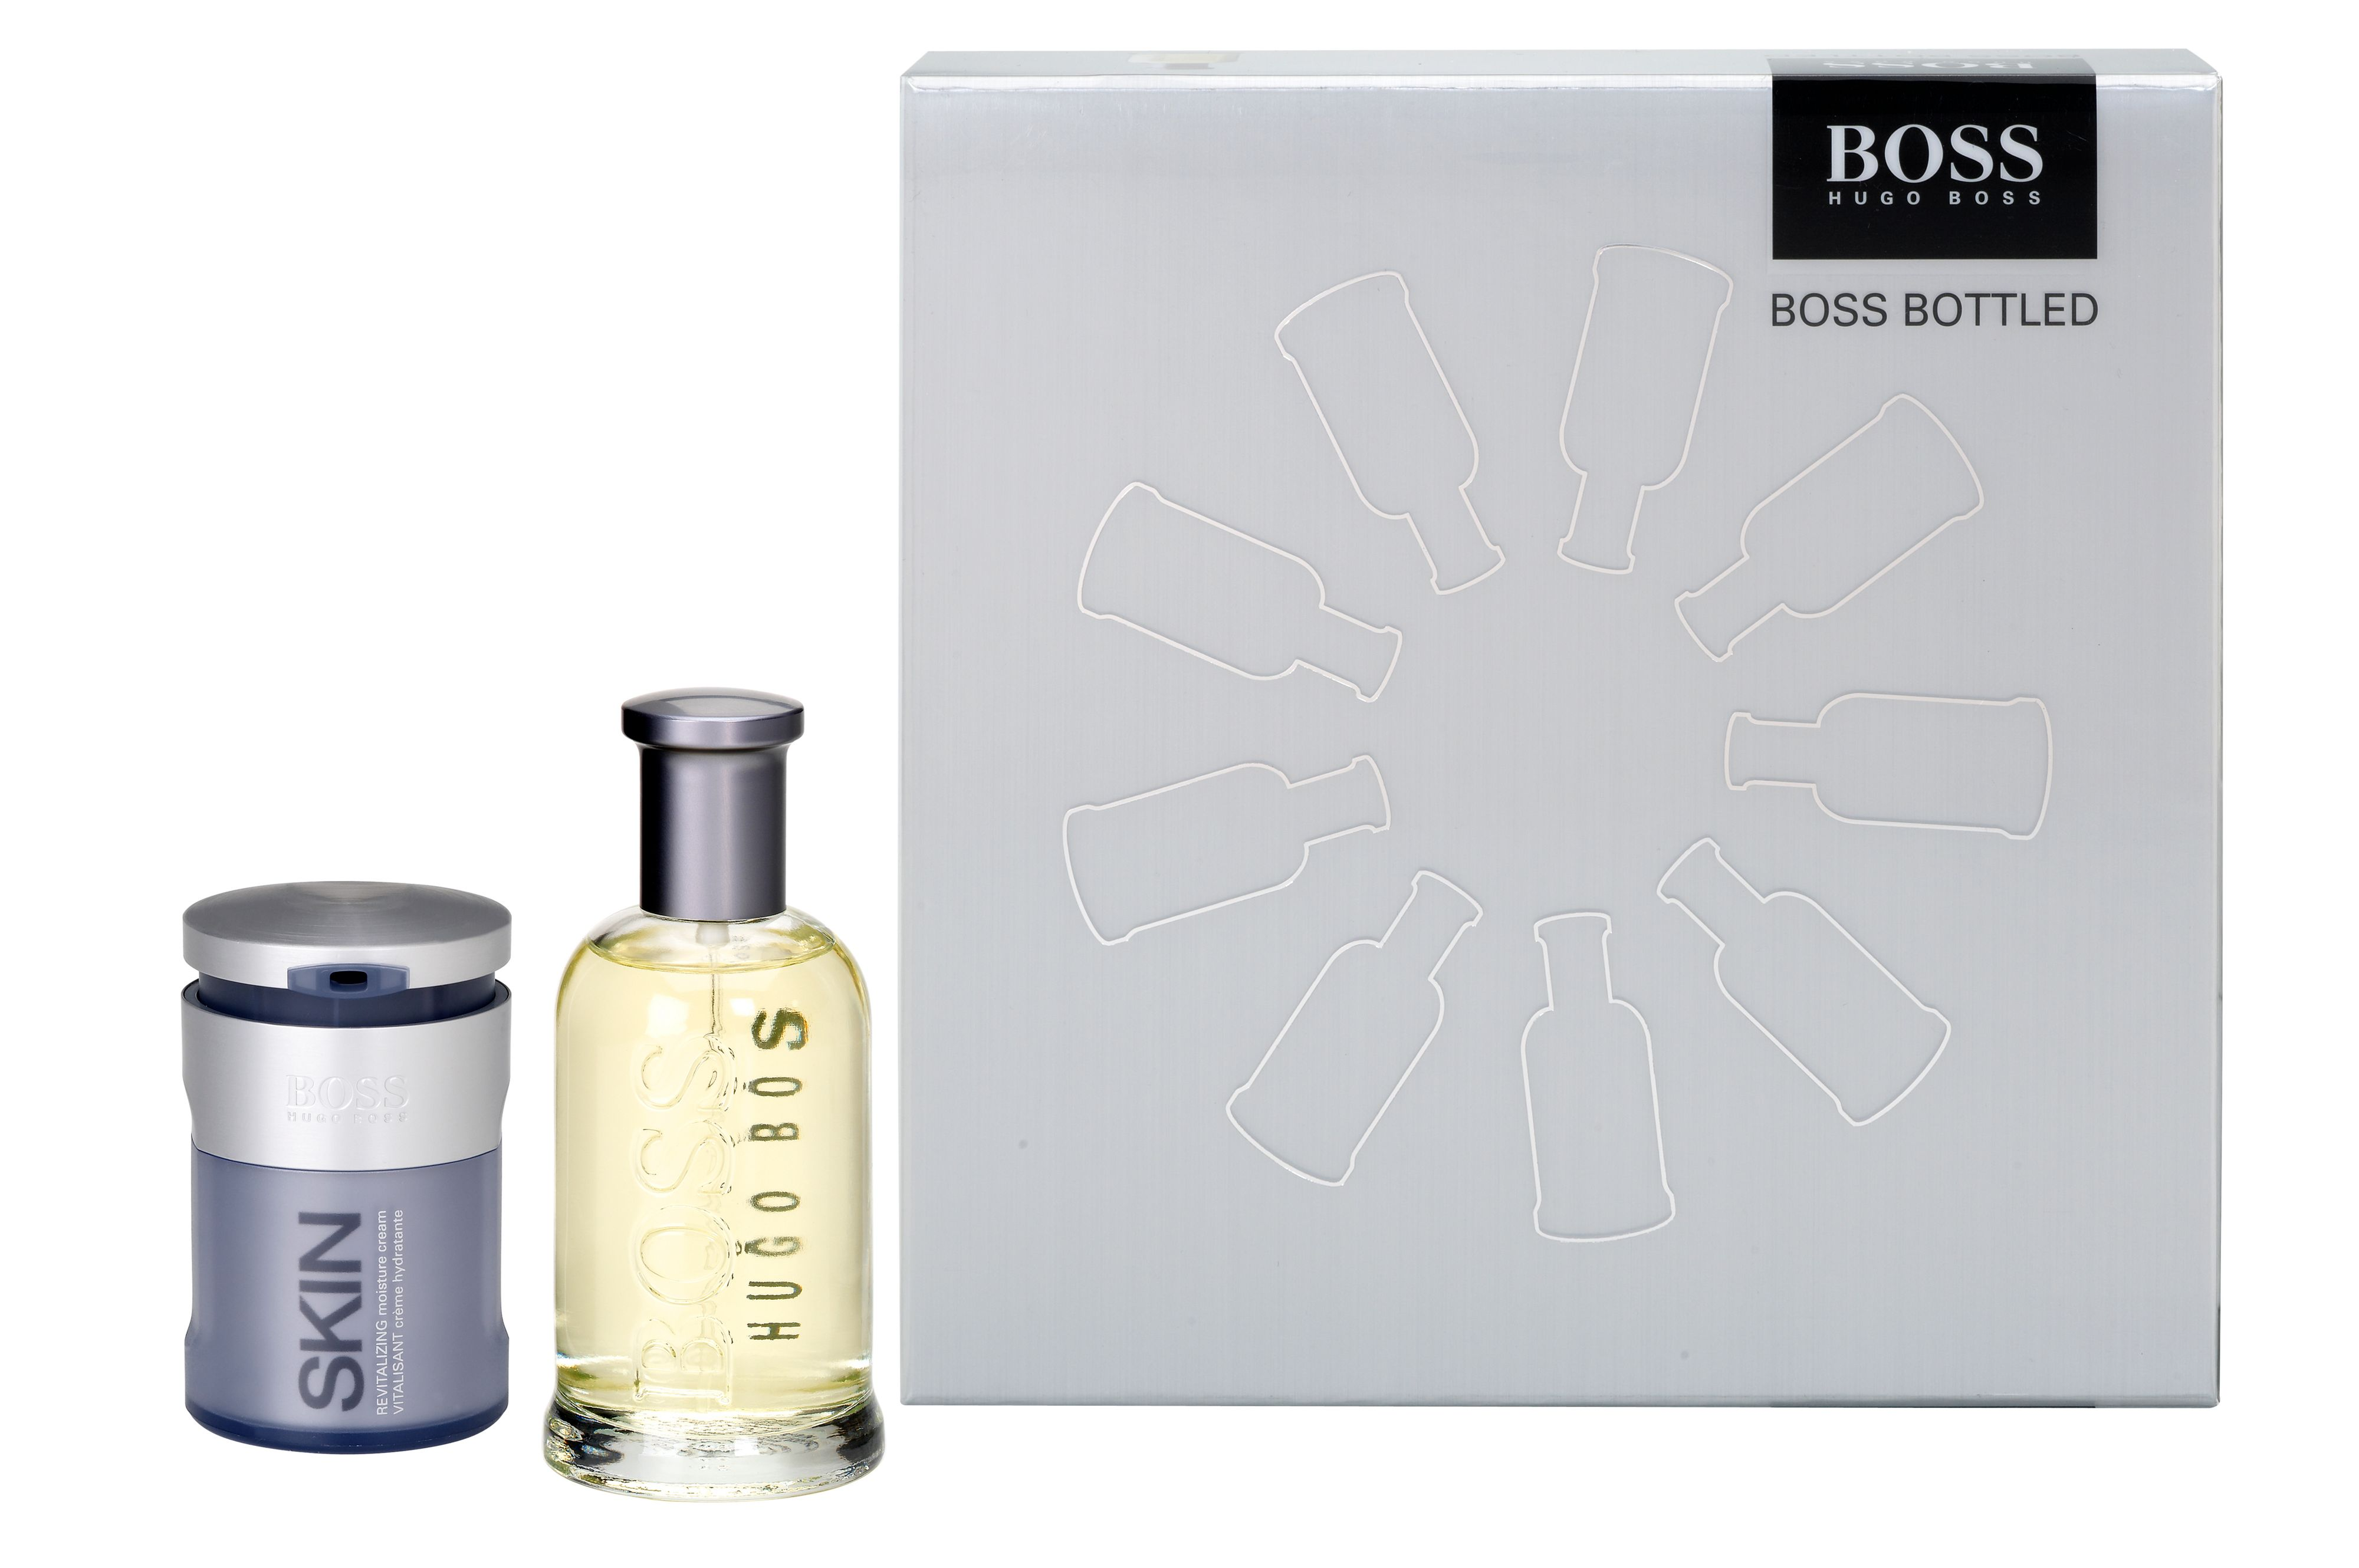 Boss Bottled & Skin Gift set